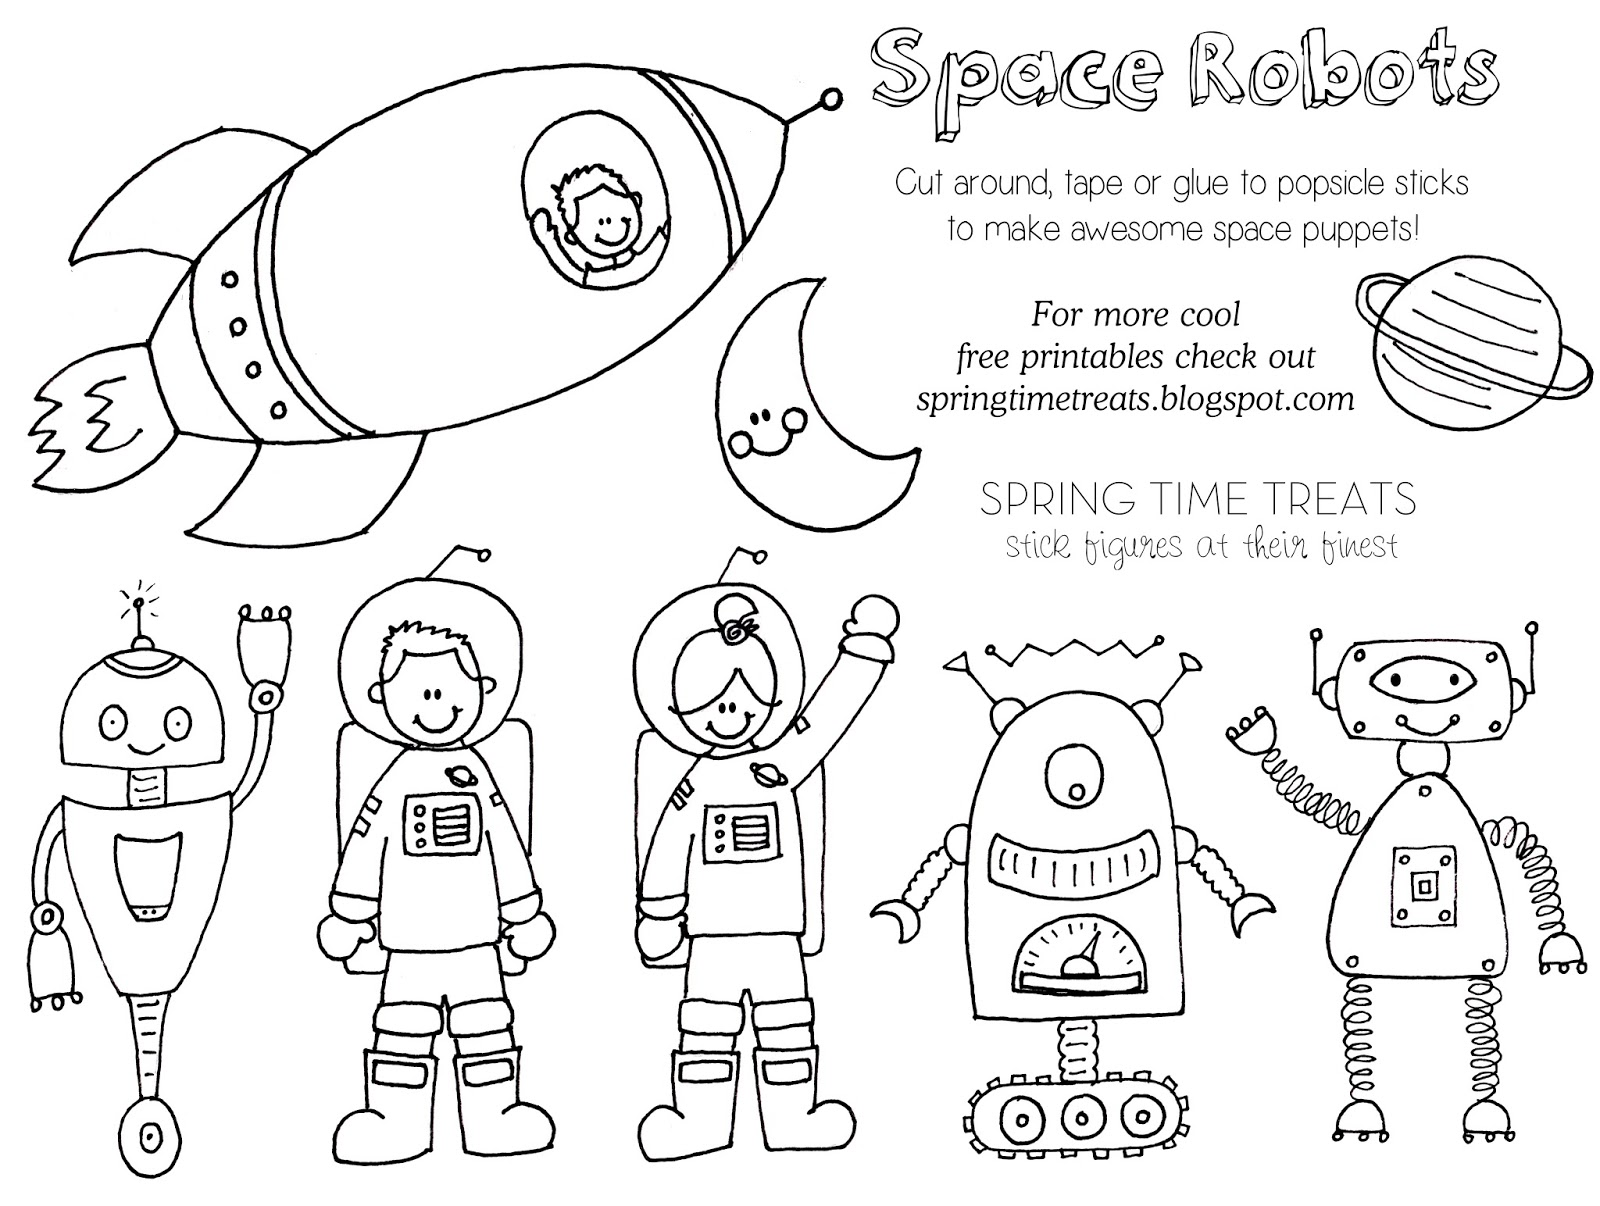 Spring Time Treats: Paper Puppets FREE (Space Robots